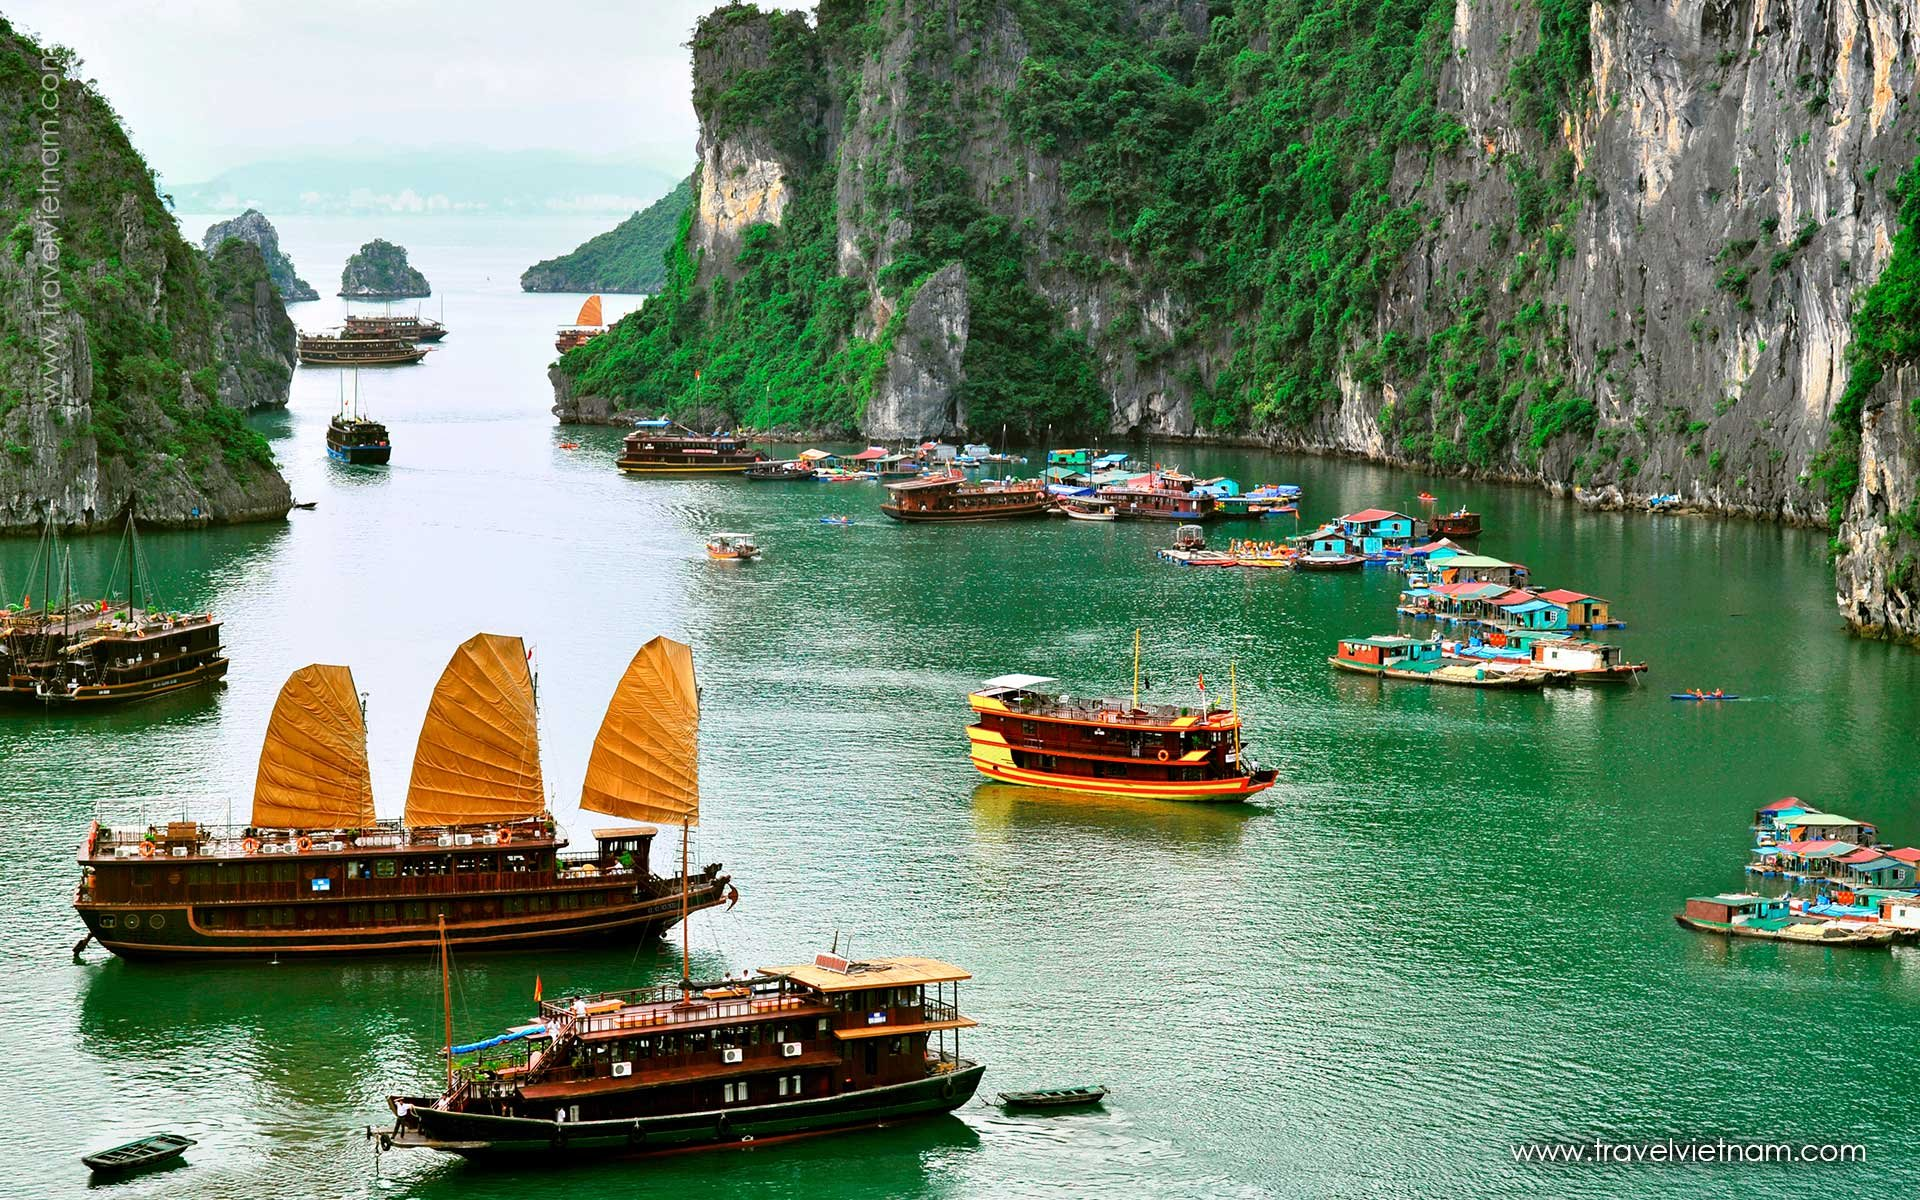 Heritage Luxury Journey (Cambodia &Vietnam Tour) - 8 Days